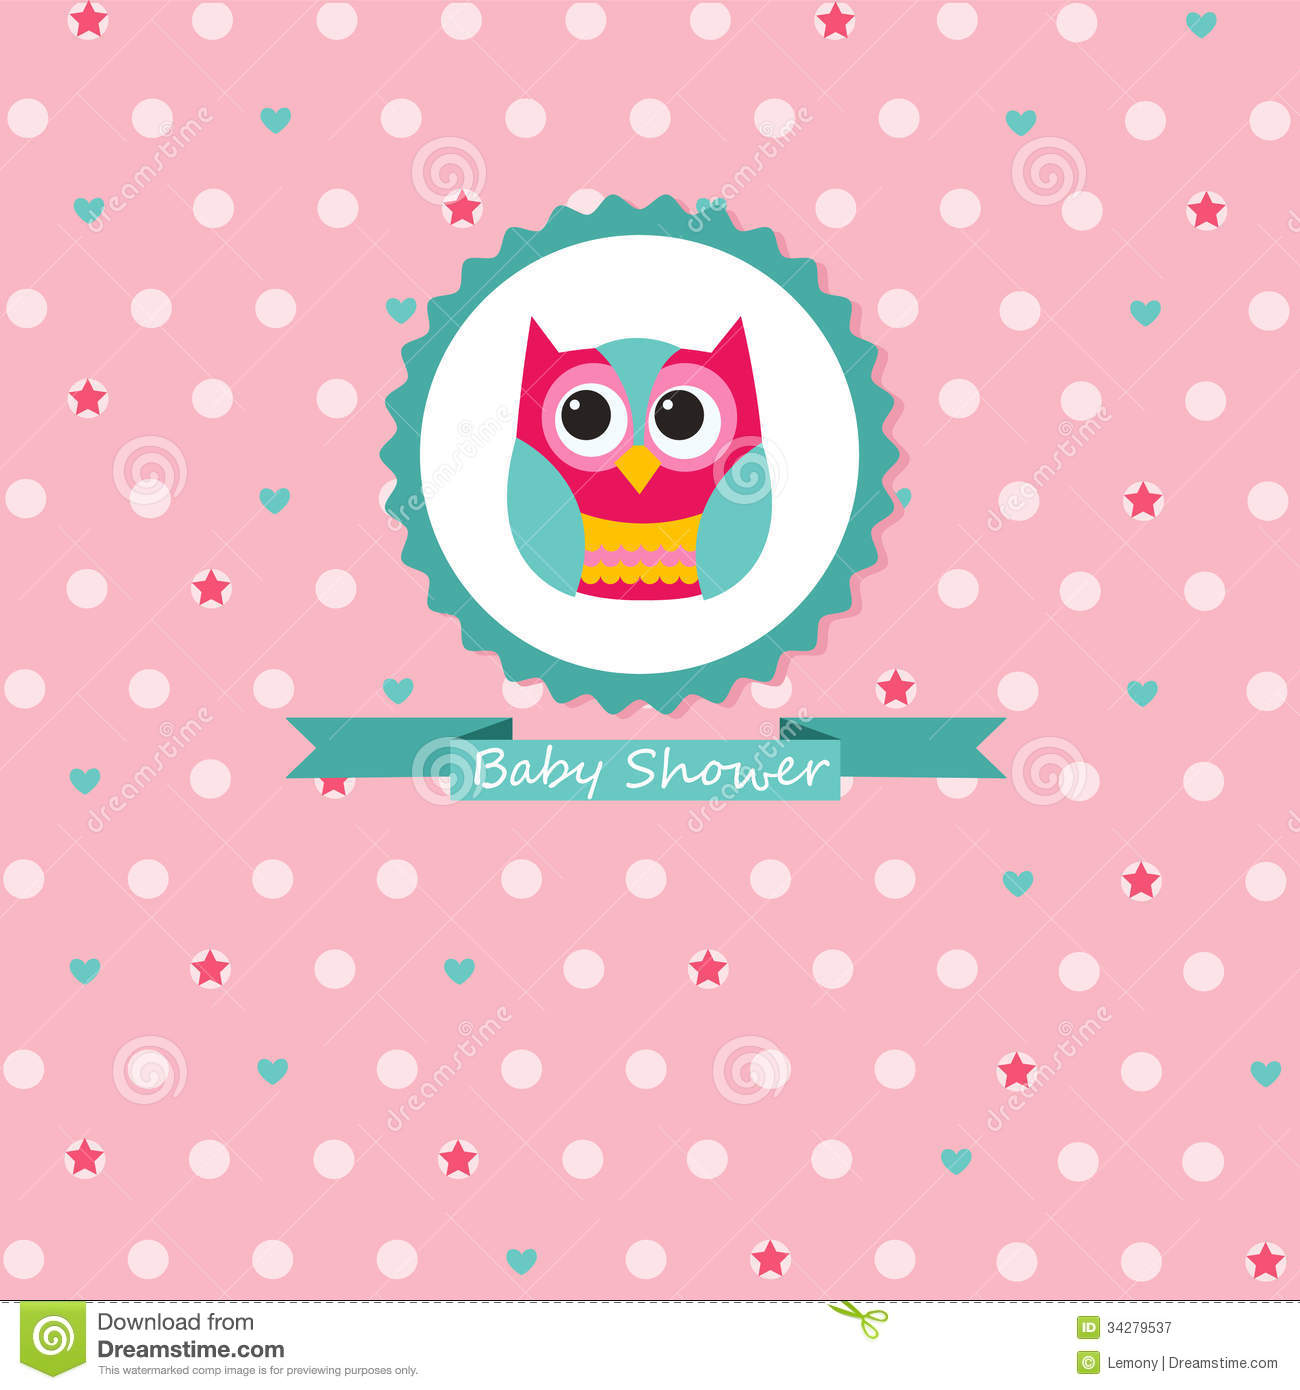 Owls Baby Shower Invitations for adorable invitation example